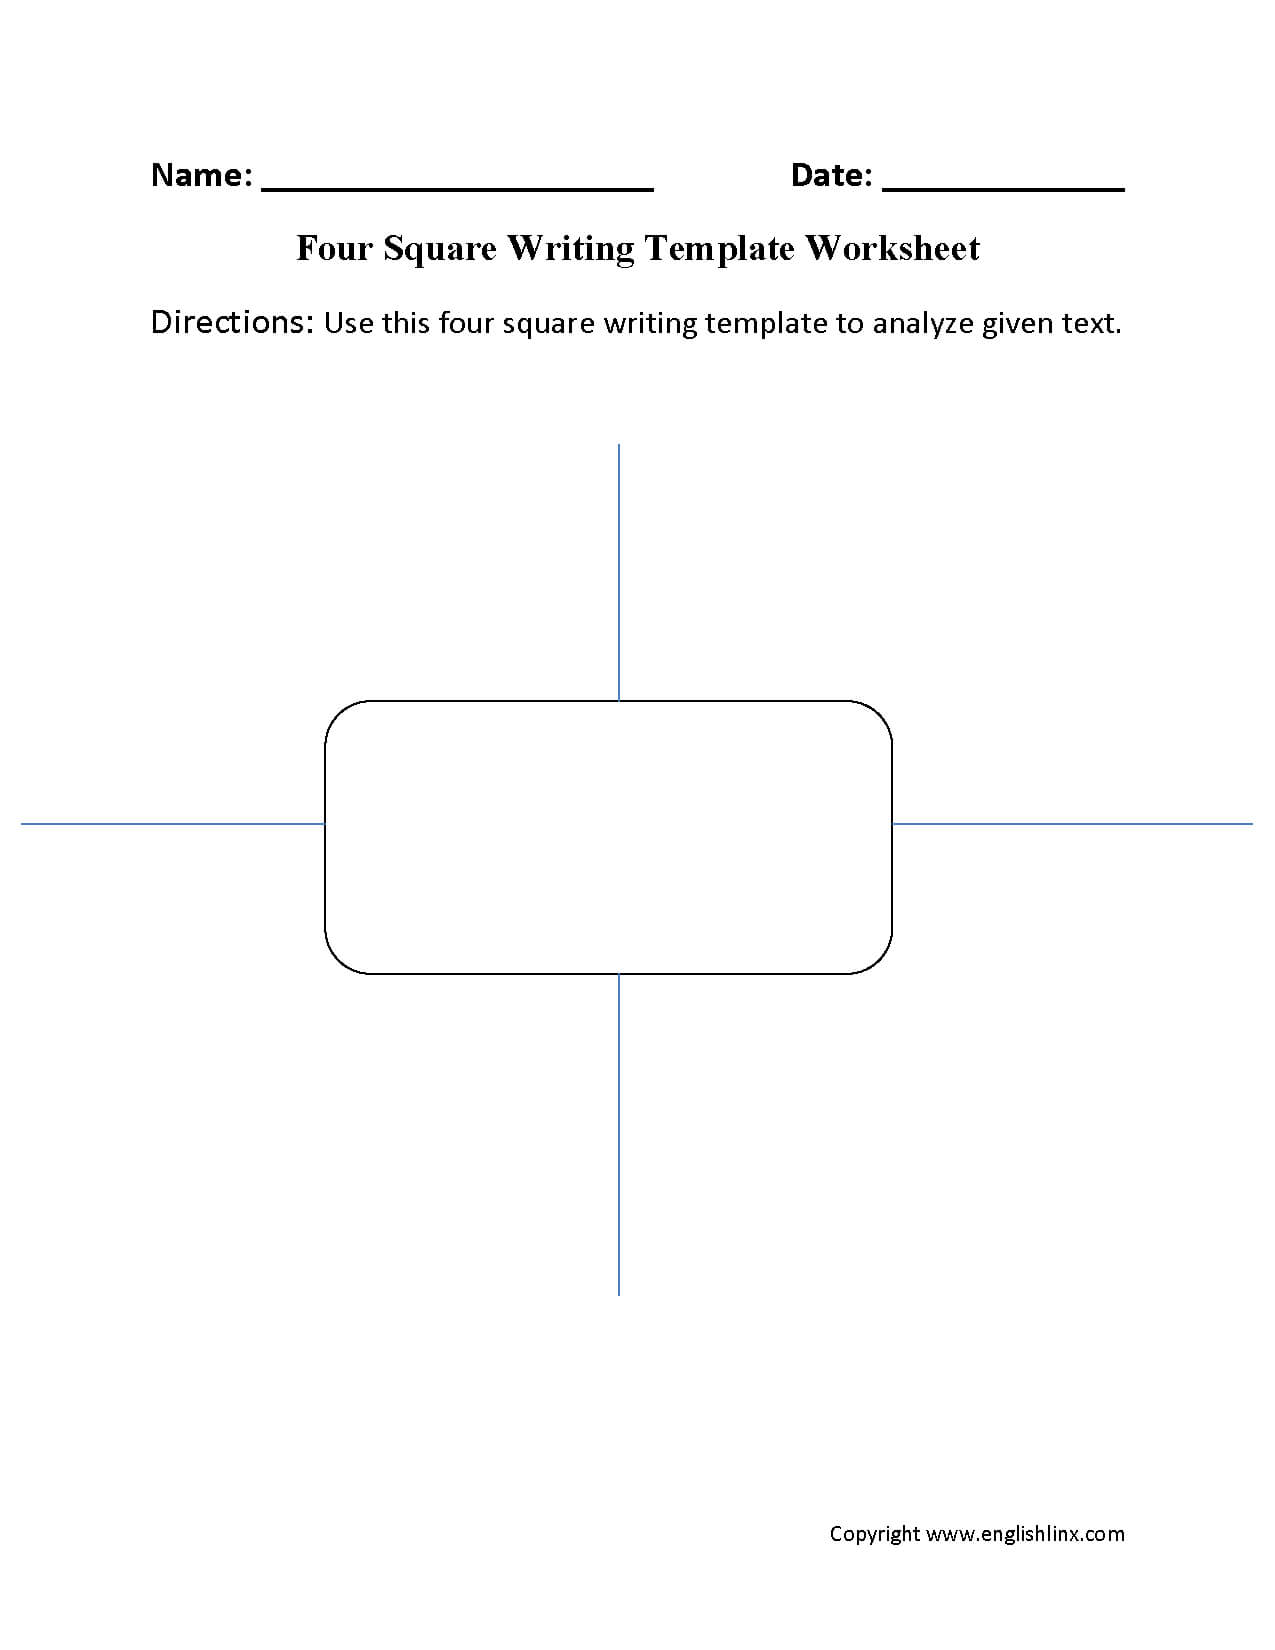 Writing Template Worksheets | Four Square Writing Template Pertaining To Blank Four Square Writing Template